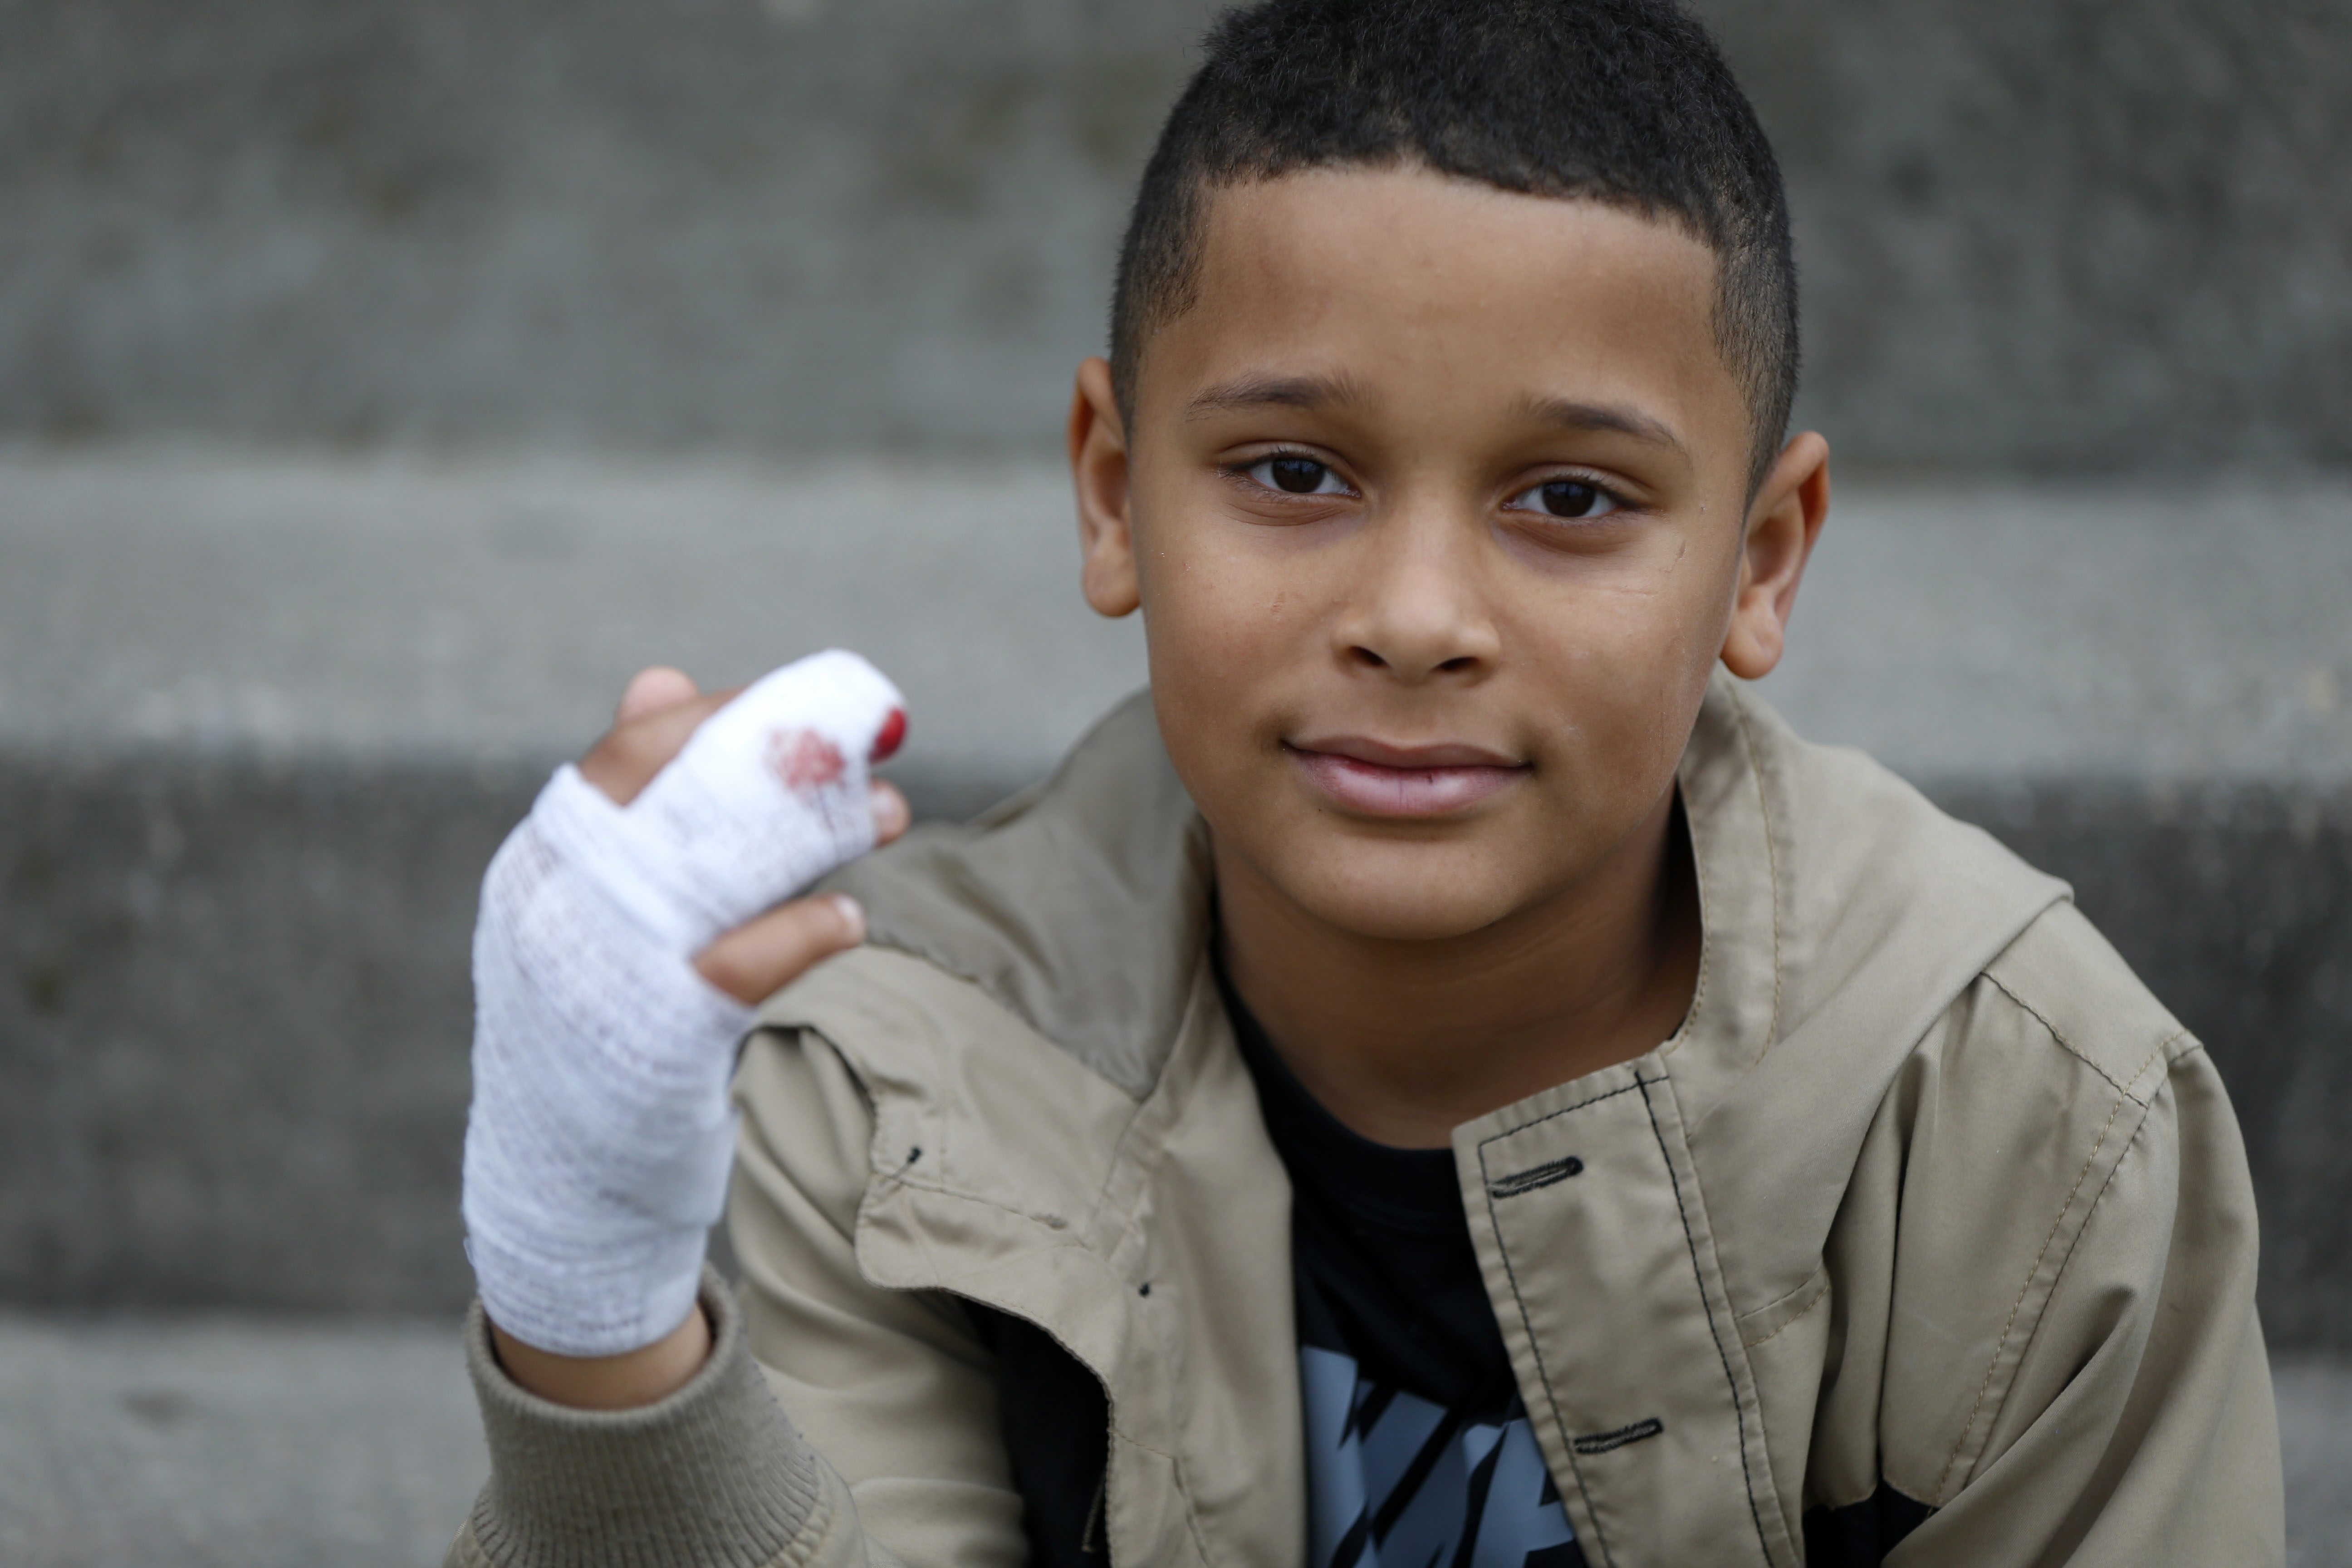 Meech Mills was treated at Women & Children's Hospital after a dog severed his  finger at the knuckle. Doctors couldn't reattach it.